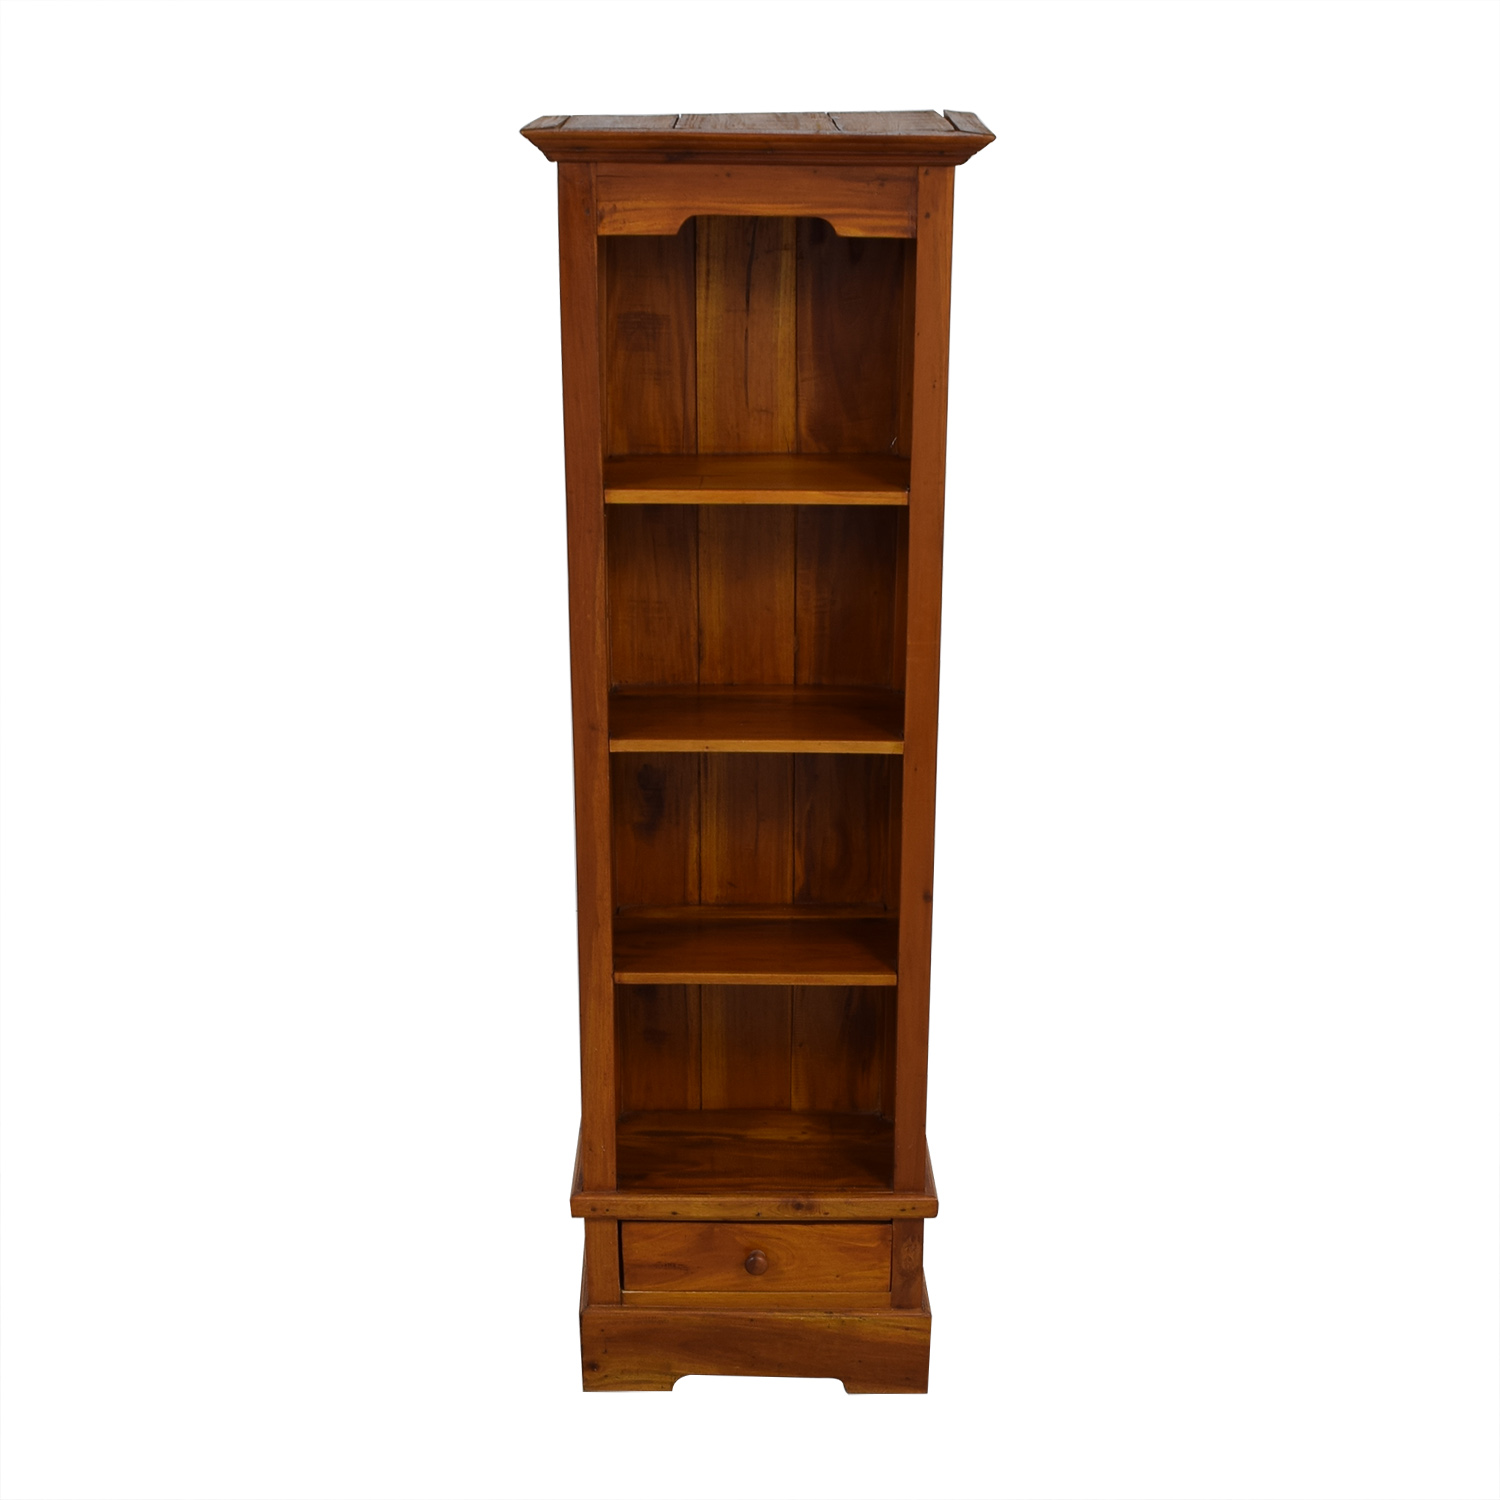 Tall Brown Wood Bookcase Storage